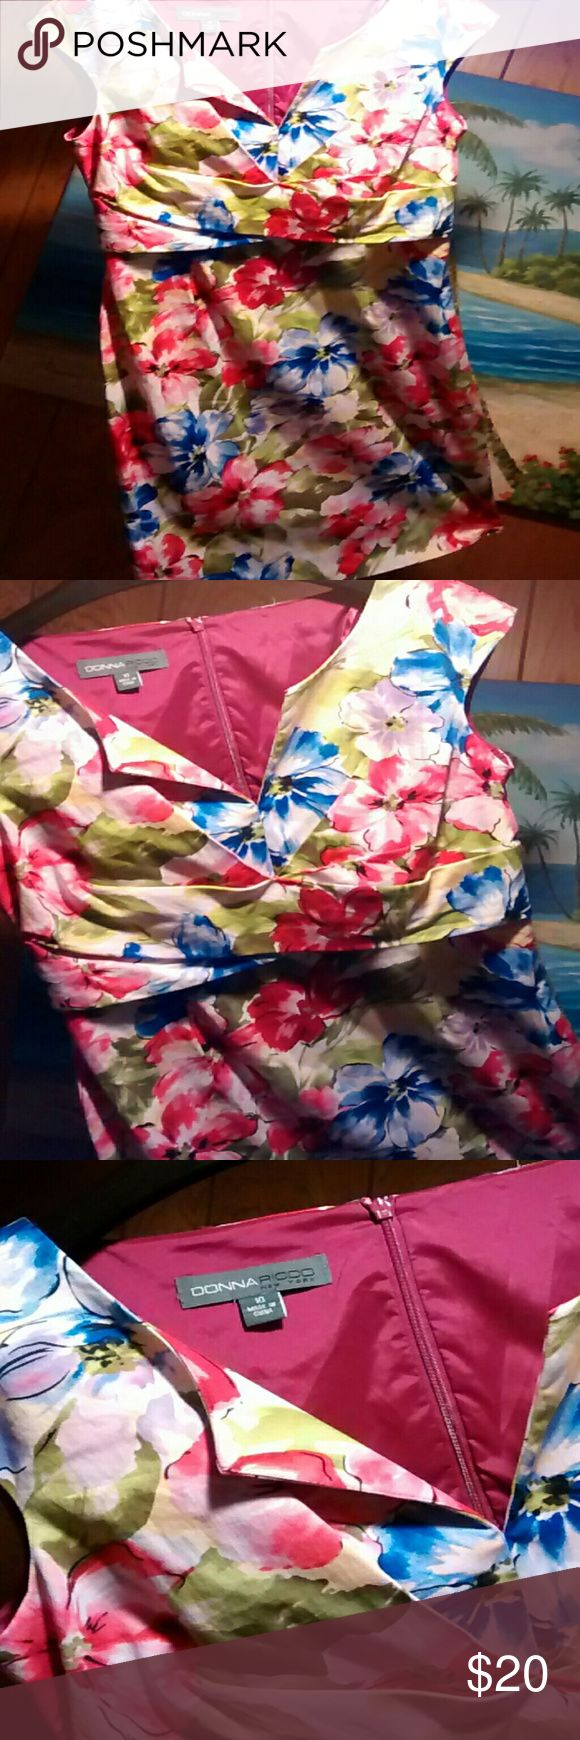 Donna Ricco size 10 floral dress. Pretty sleeveless floral dress. Front goes to a v, and there is a band at the waist.Waist measures about 32inches. Length in back is 39inches.  Hidden zipper in back. Blue, green, pink, yellow, lavender and white in color. Donna Ricco Dresses